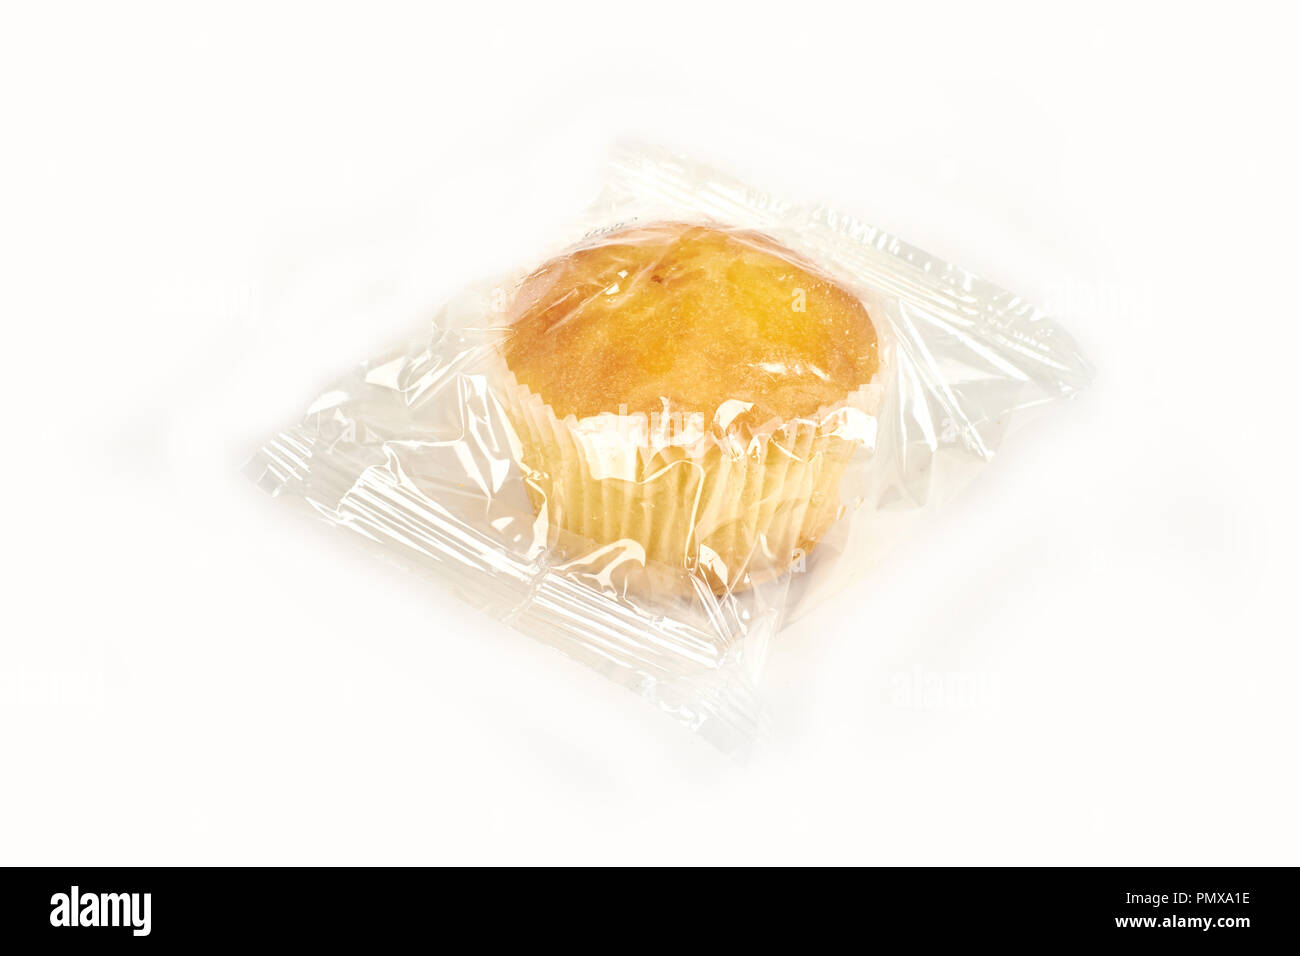 muffins packed in transparent packaging, on a white background. - Stock Image